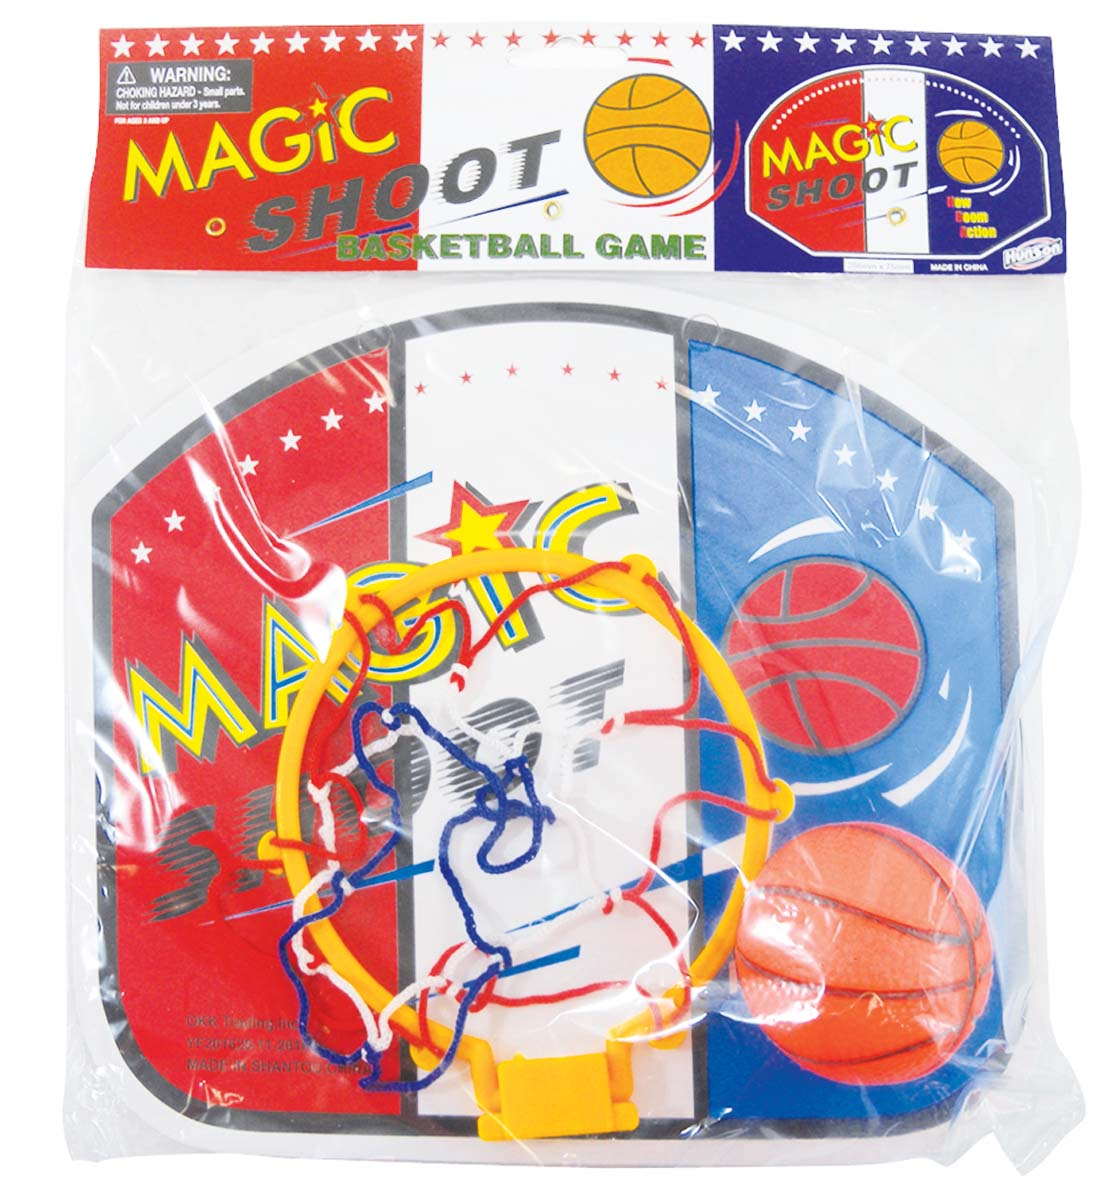 View  BASKETBALL BOARD PLAY SET 11X9.75 INCHES